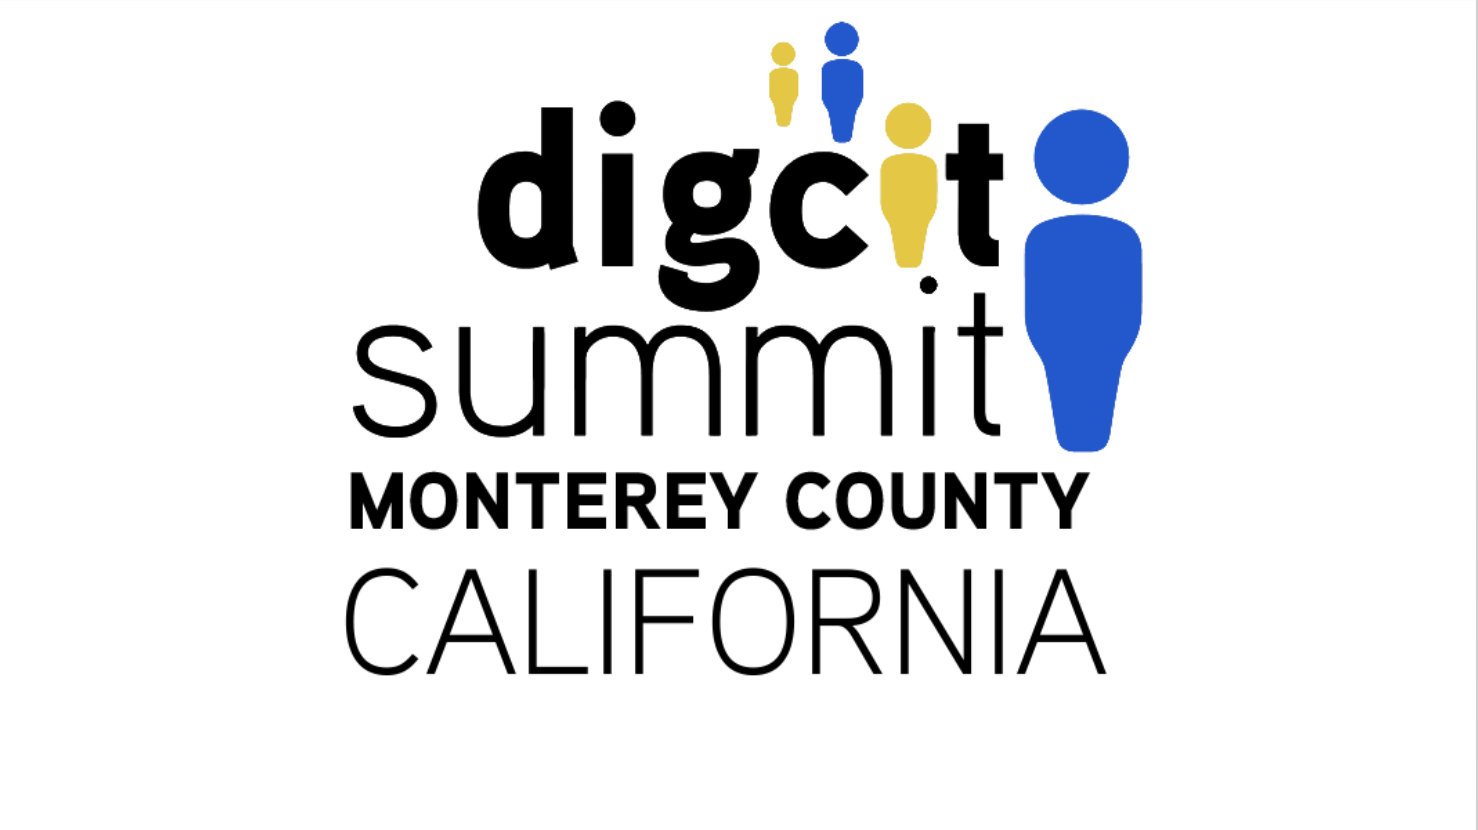 Digital Citizenship Summit: California